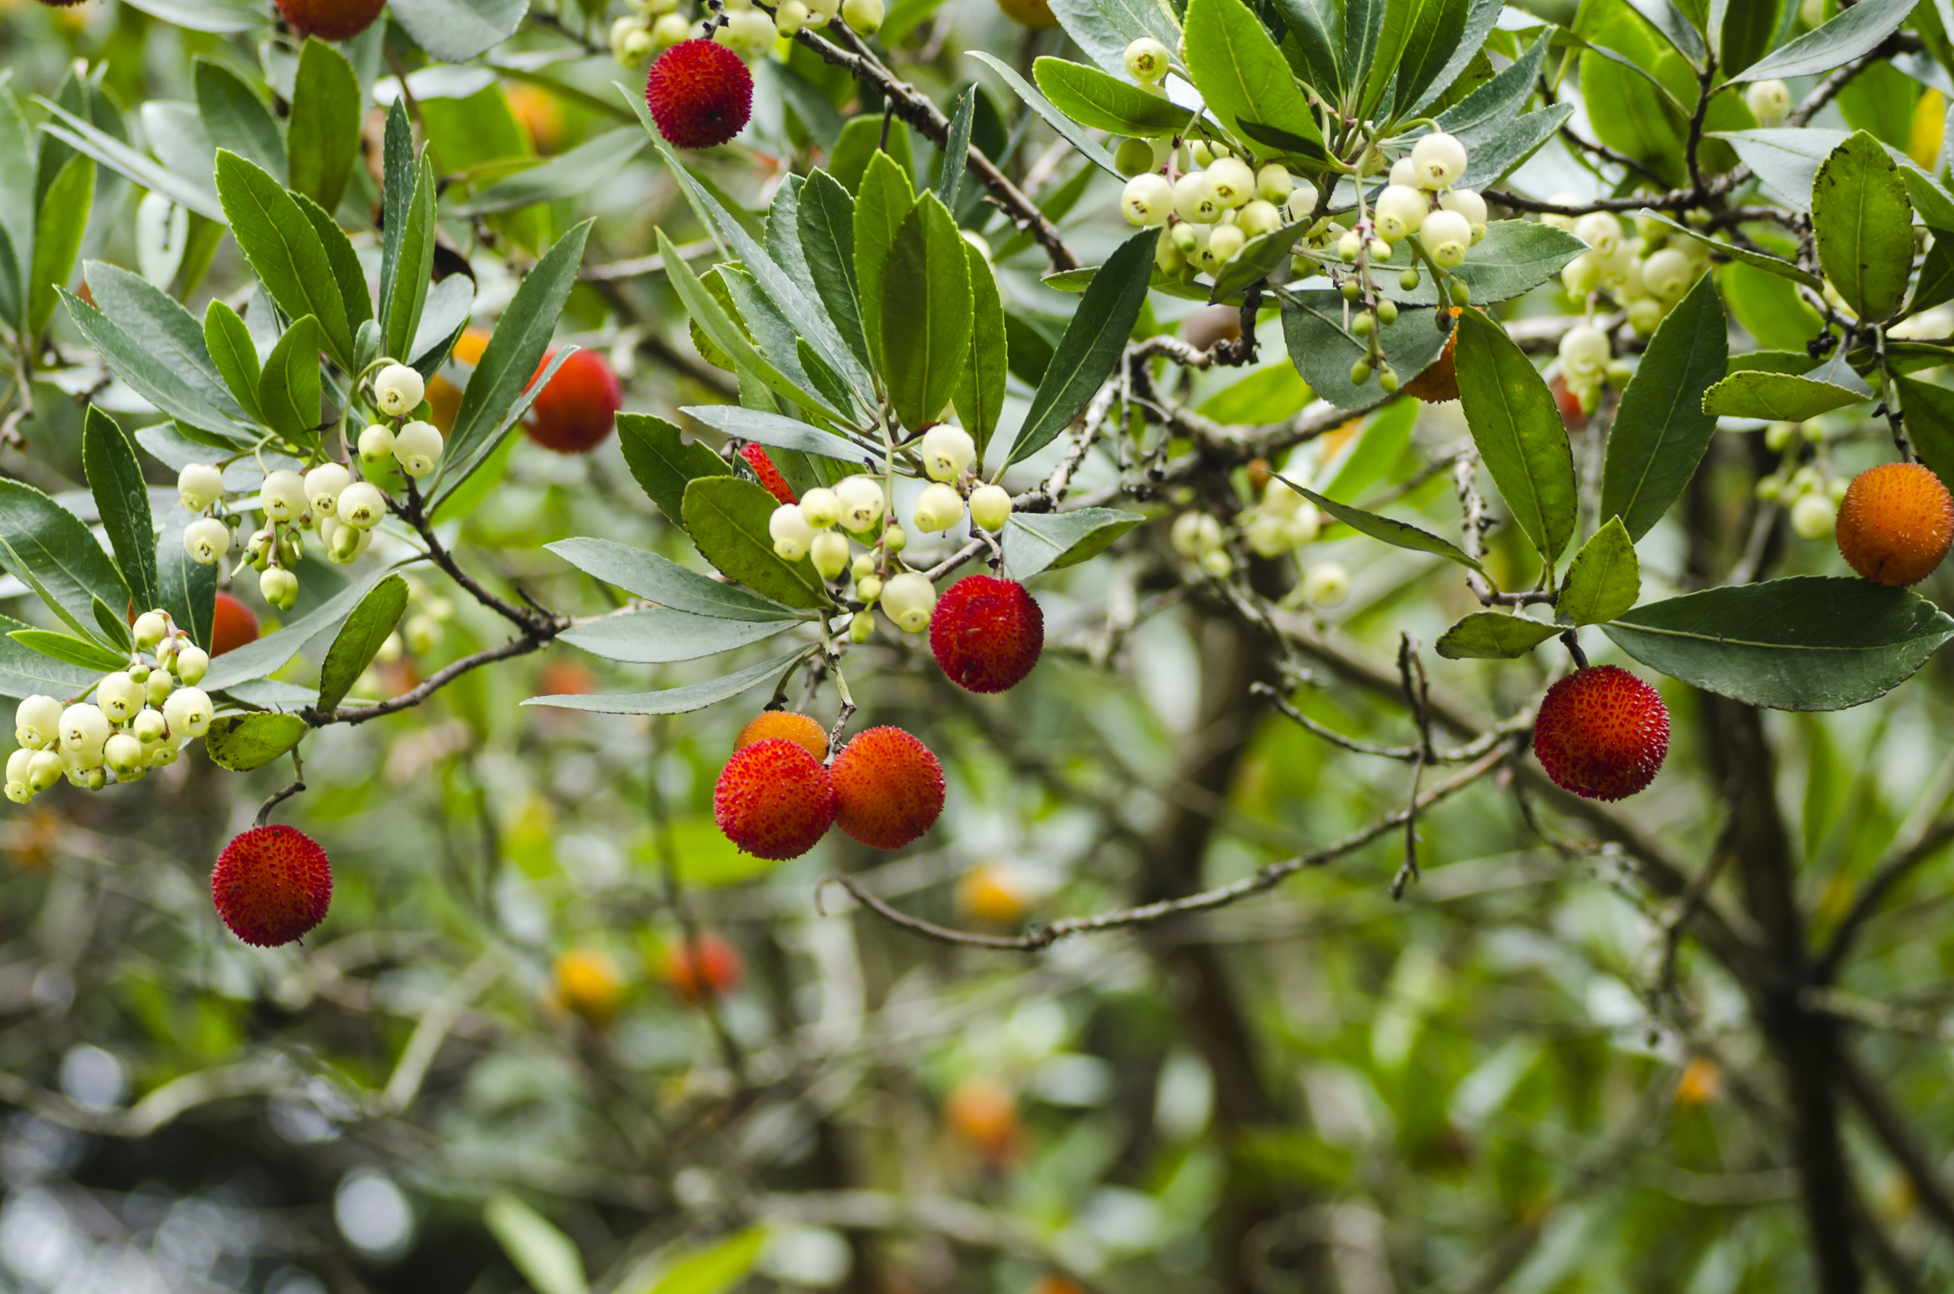 Arbutus unedo (strawberry tree)